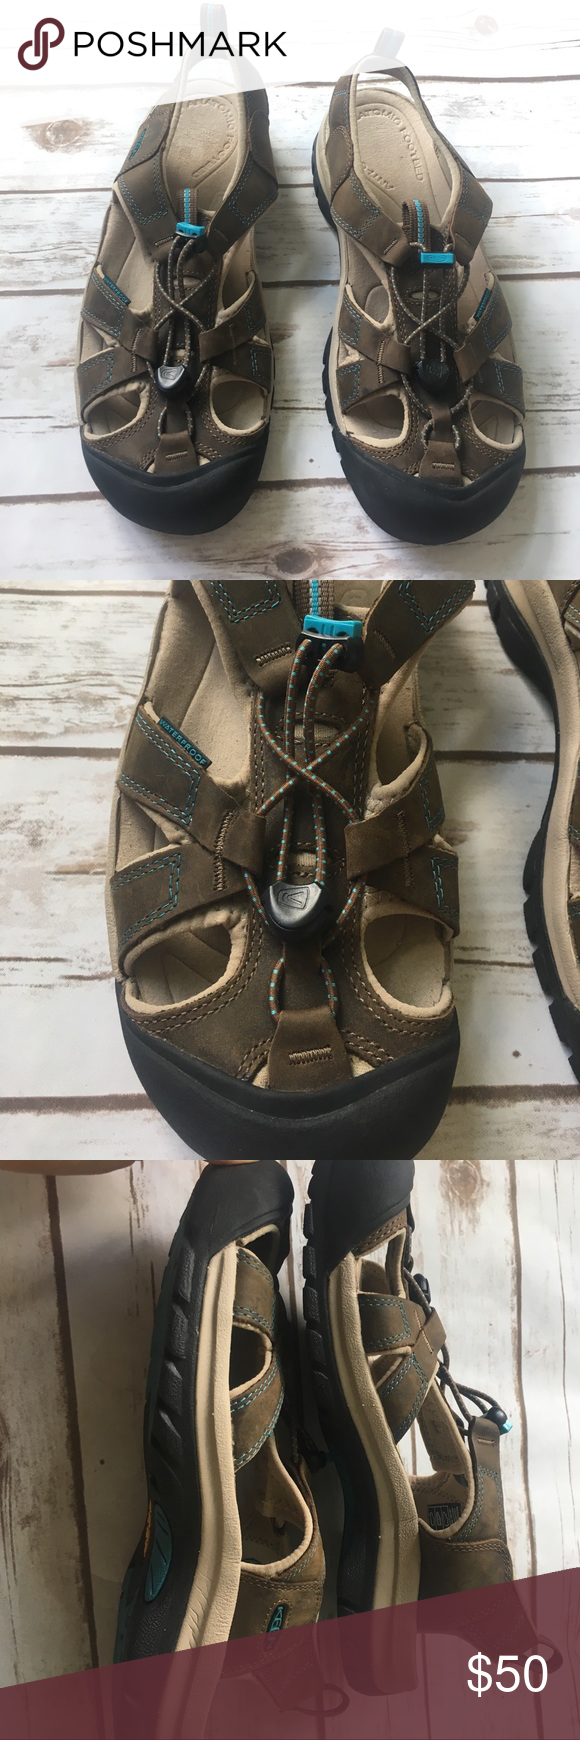 9a55626fdba Keen Woman s Venice Sandal These are in excellent used condition! Looks  like they were hardly worn. Waterproof with an an odor proof anatomic food  bed!